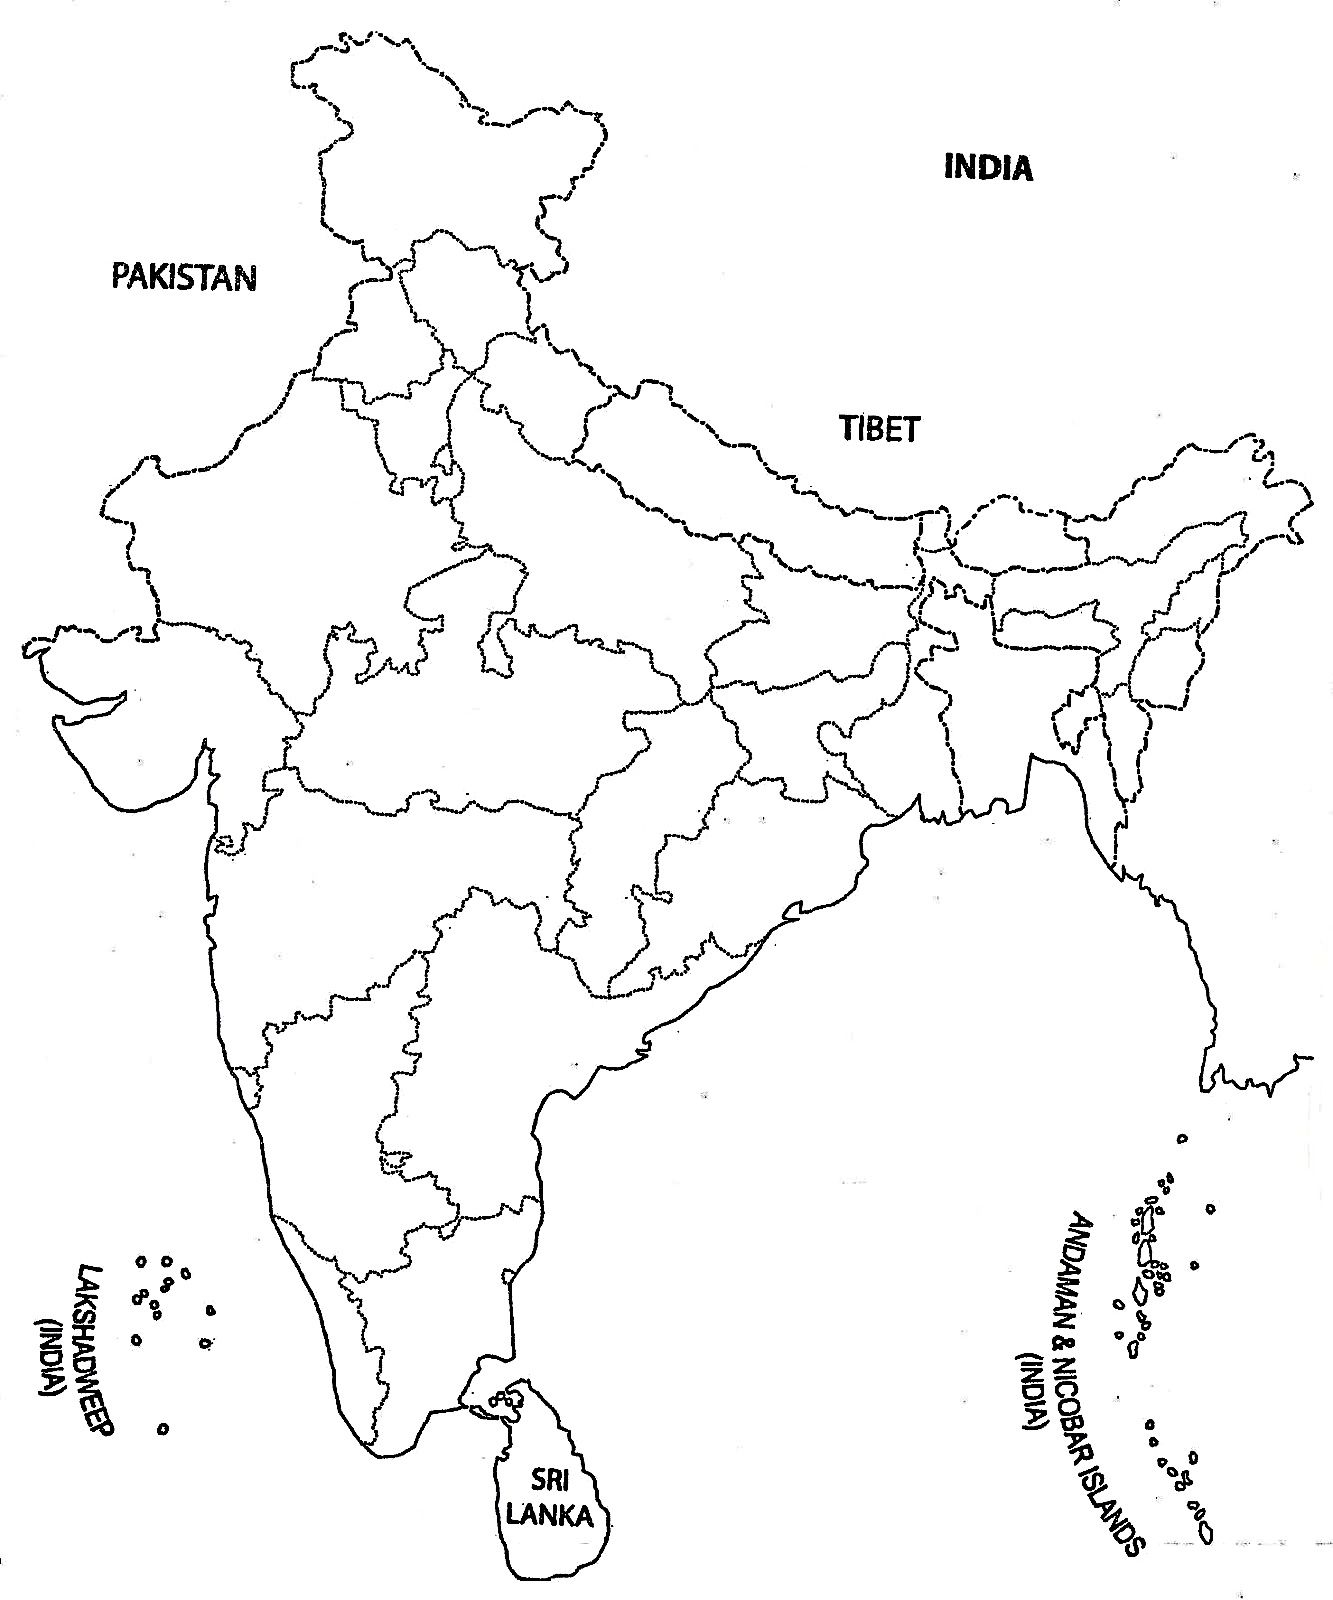 India Political Map Blank india map outline a4 size | Map of India With States | India map